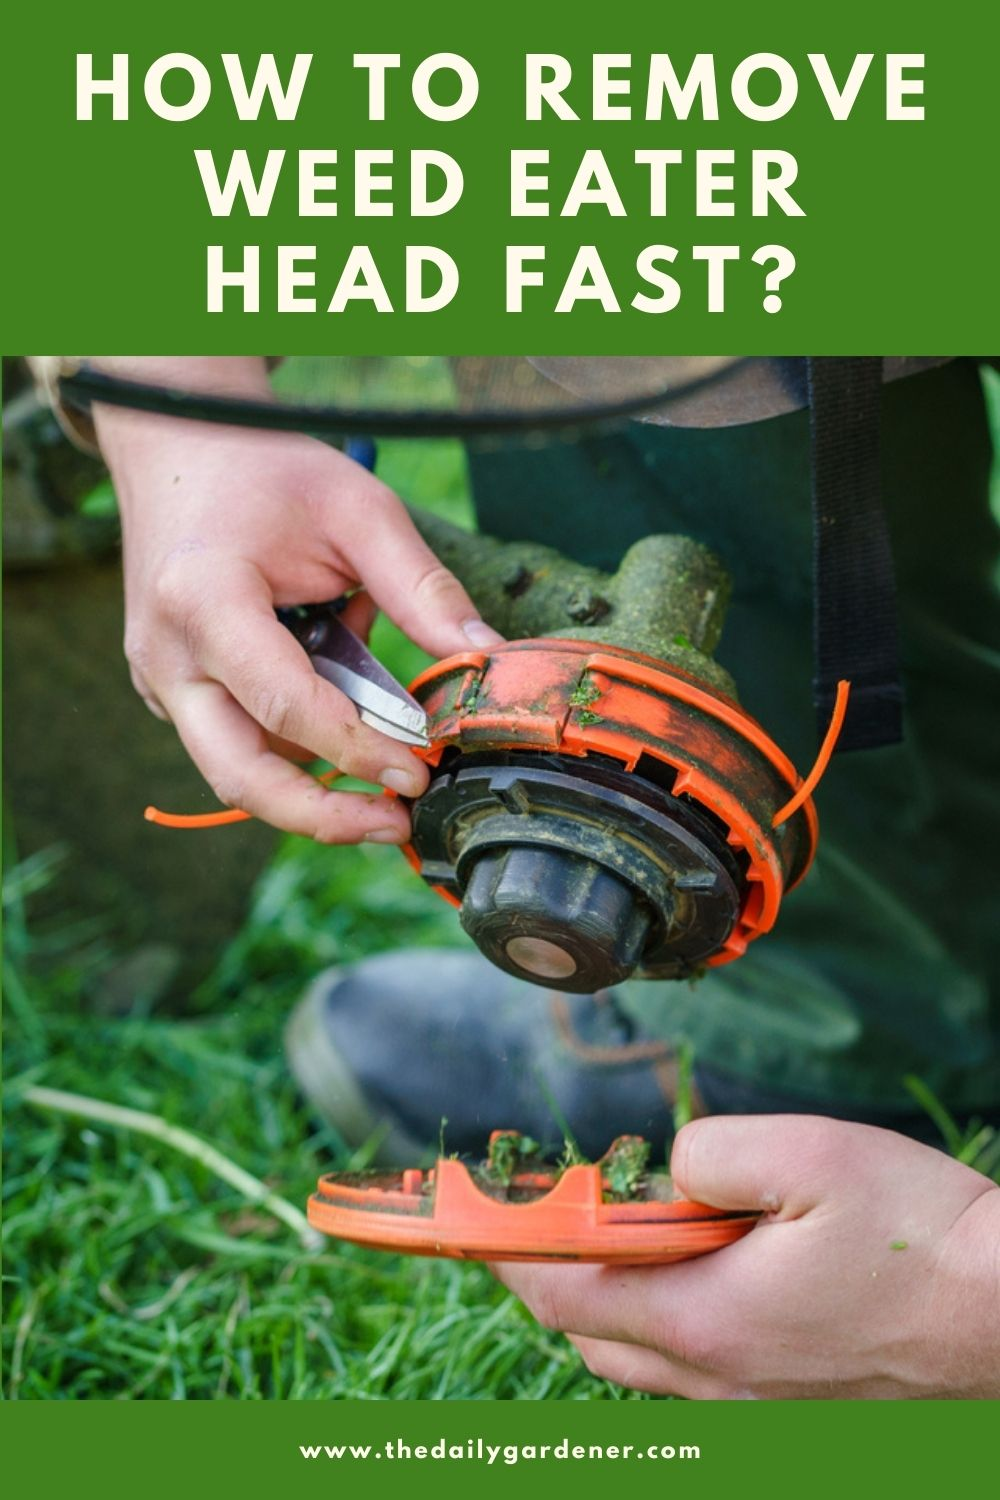 How to Remove Weed Eater Head Fast 2